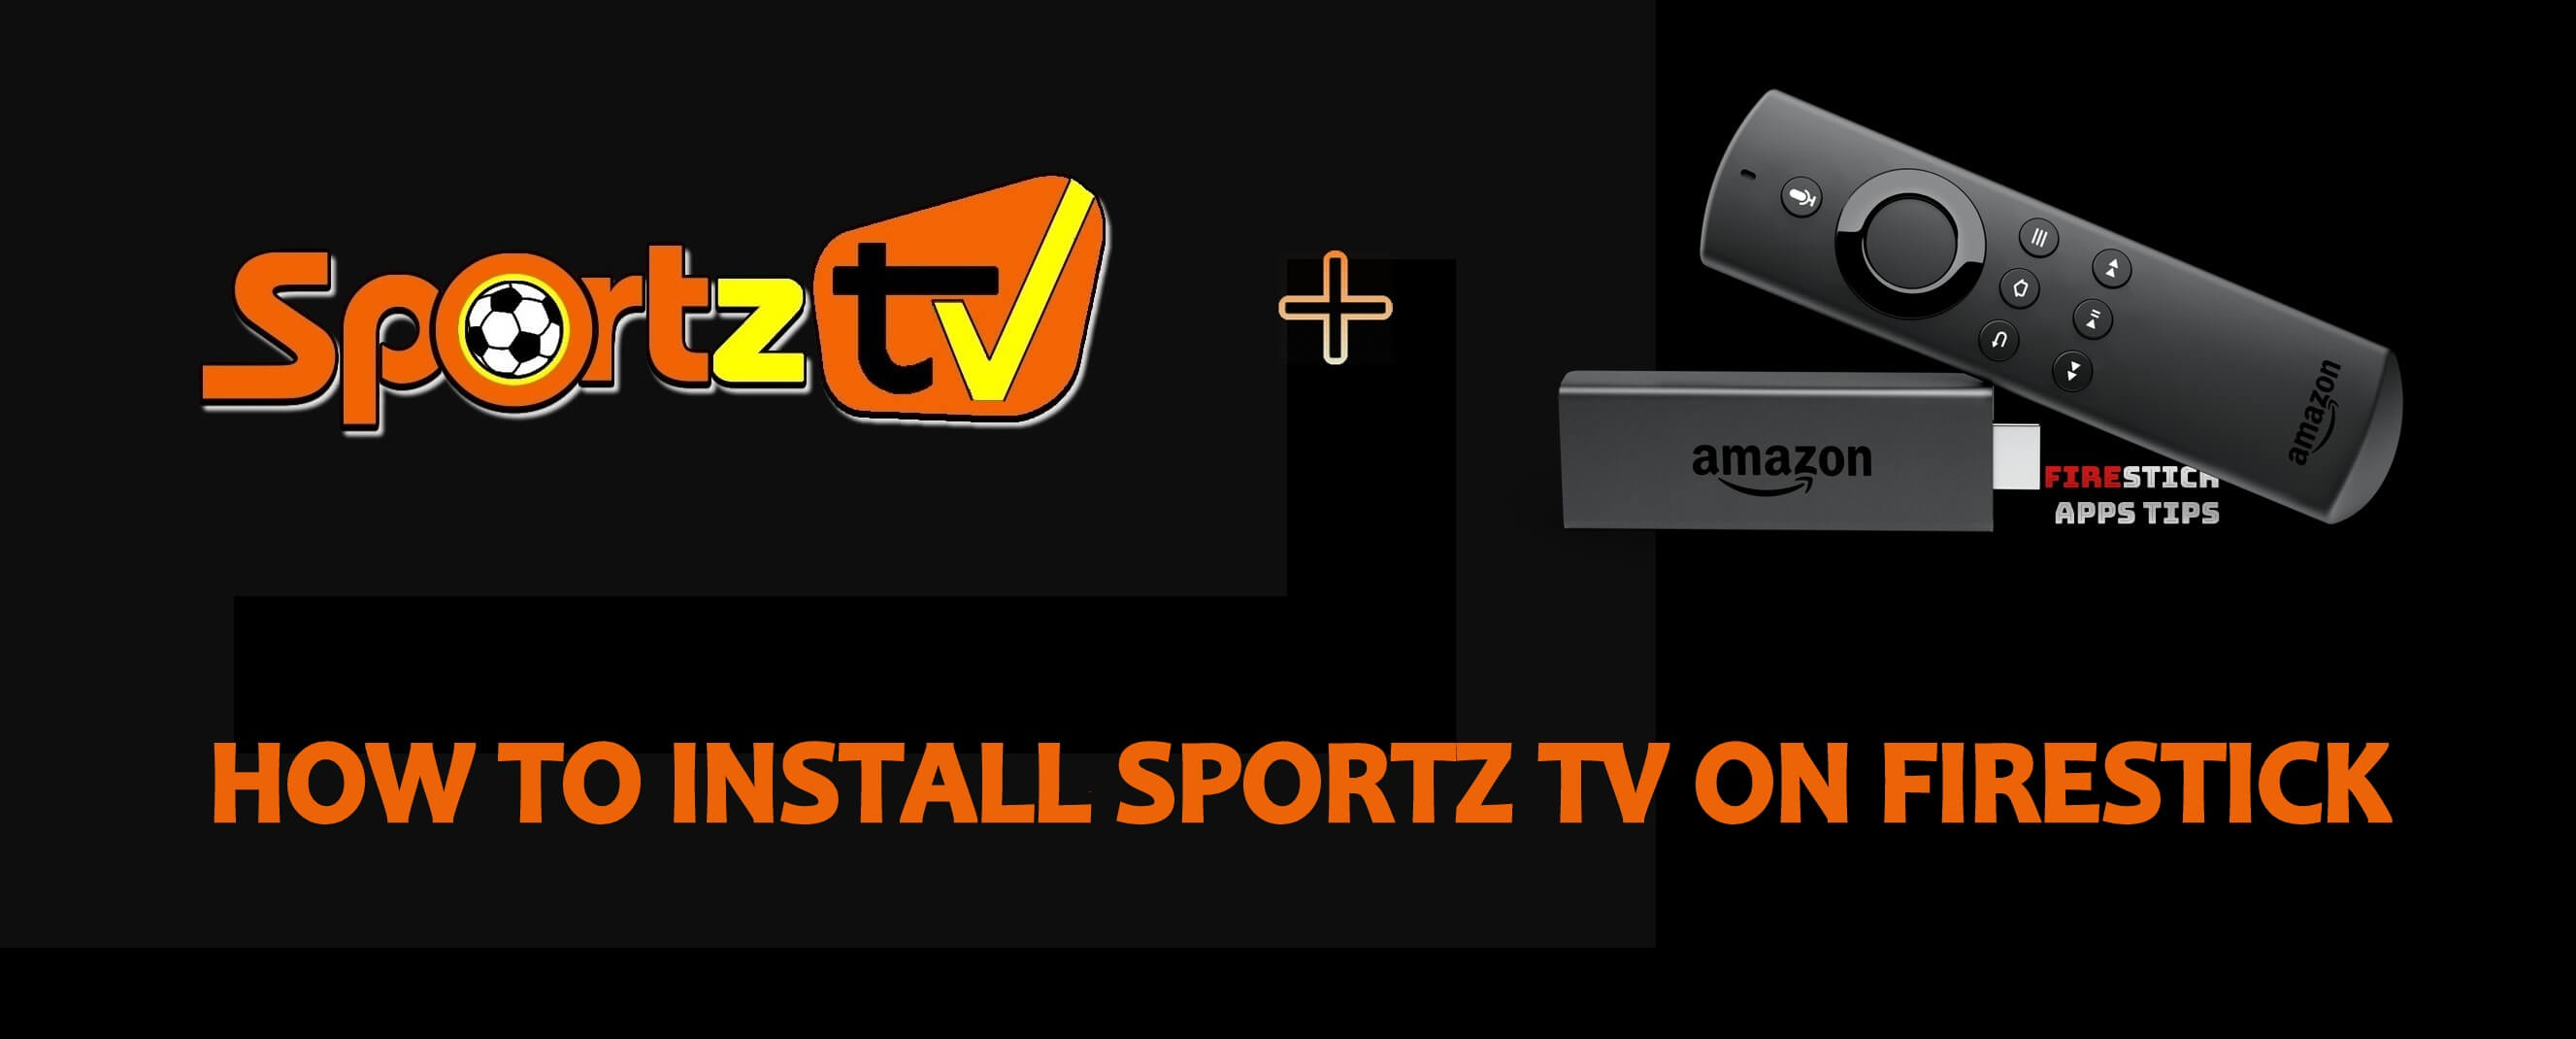 How to Install Sportz TV IPTV on Firestick / Android TV Box 2021